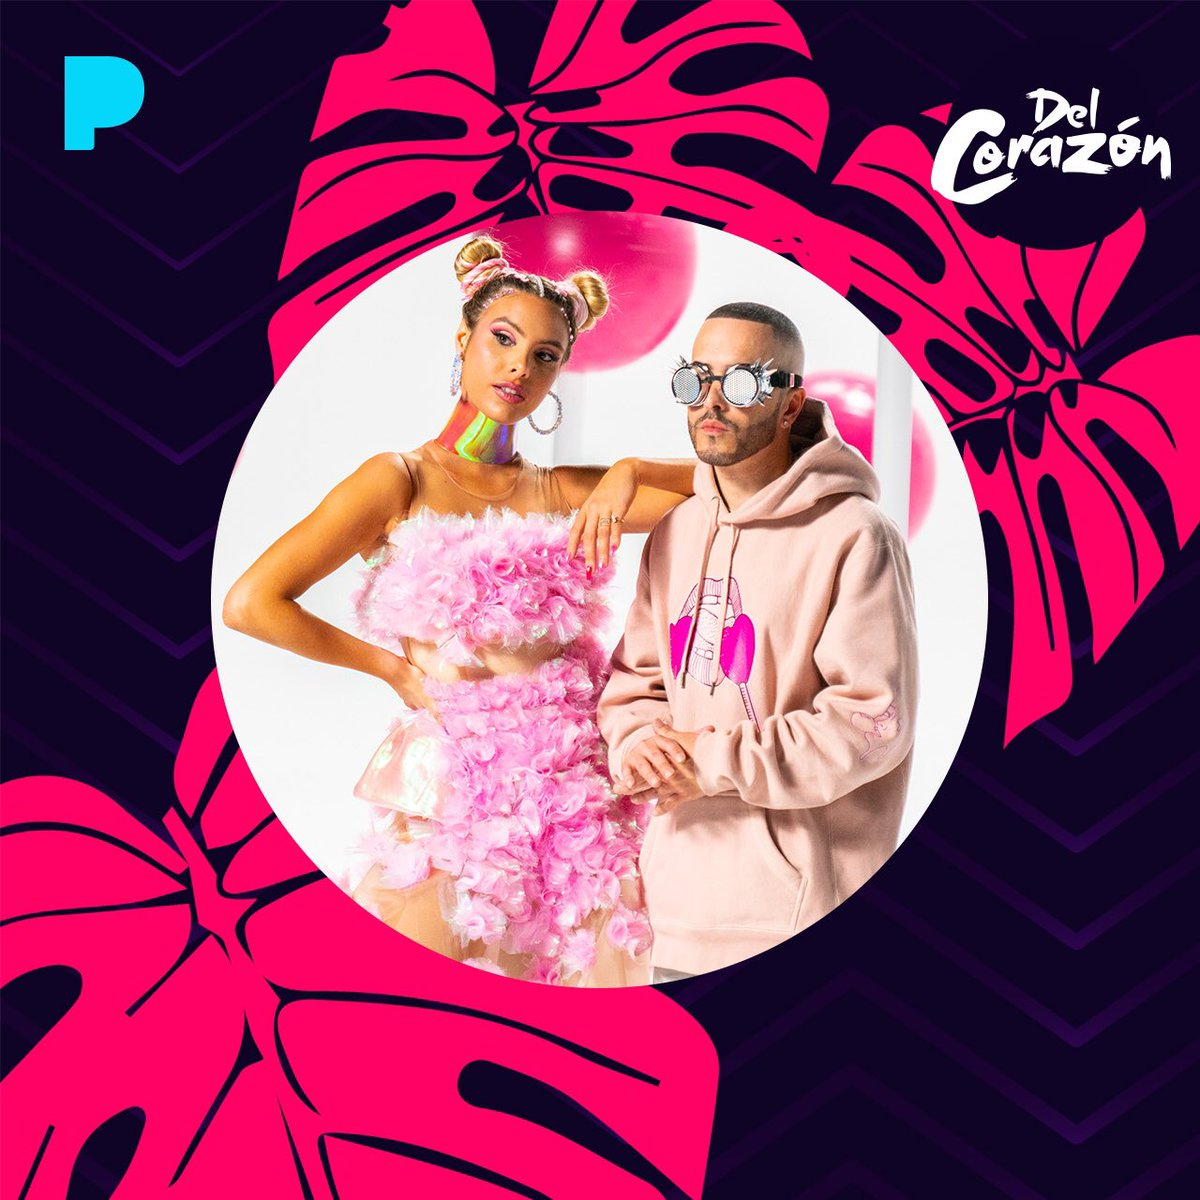 Replying to @lelepons: Thank you @pandoramusic 💕🍬 Listen to Bubble Gum on Del Corazón station here